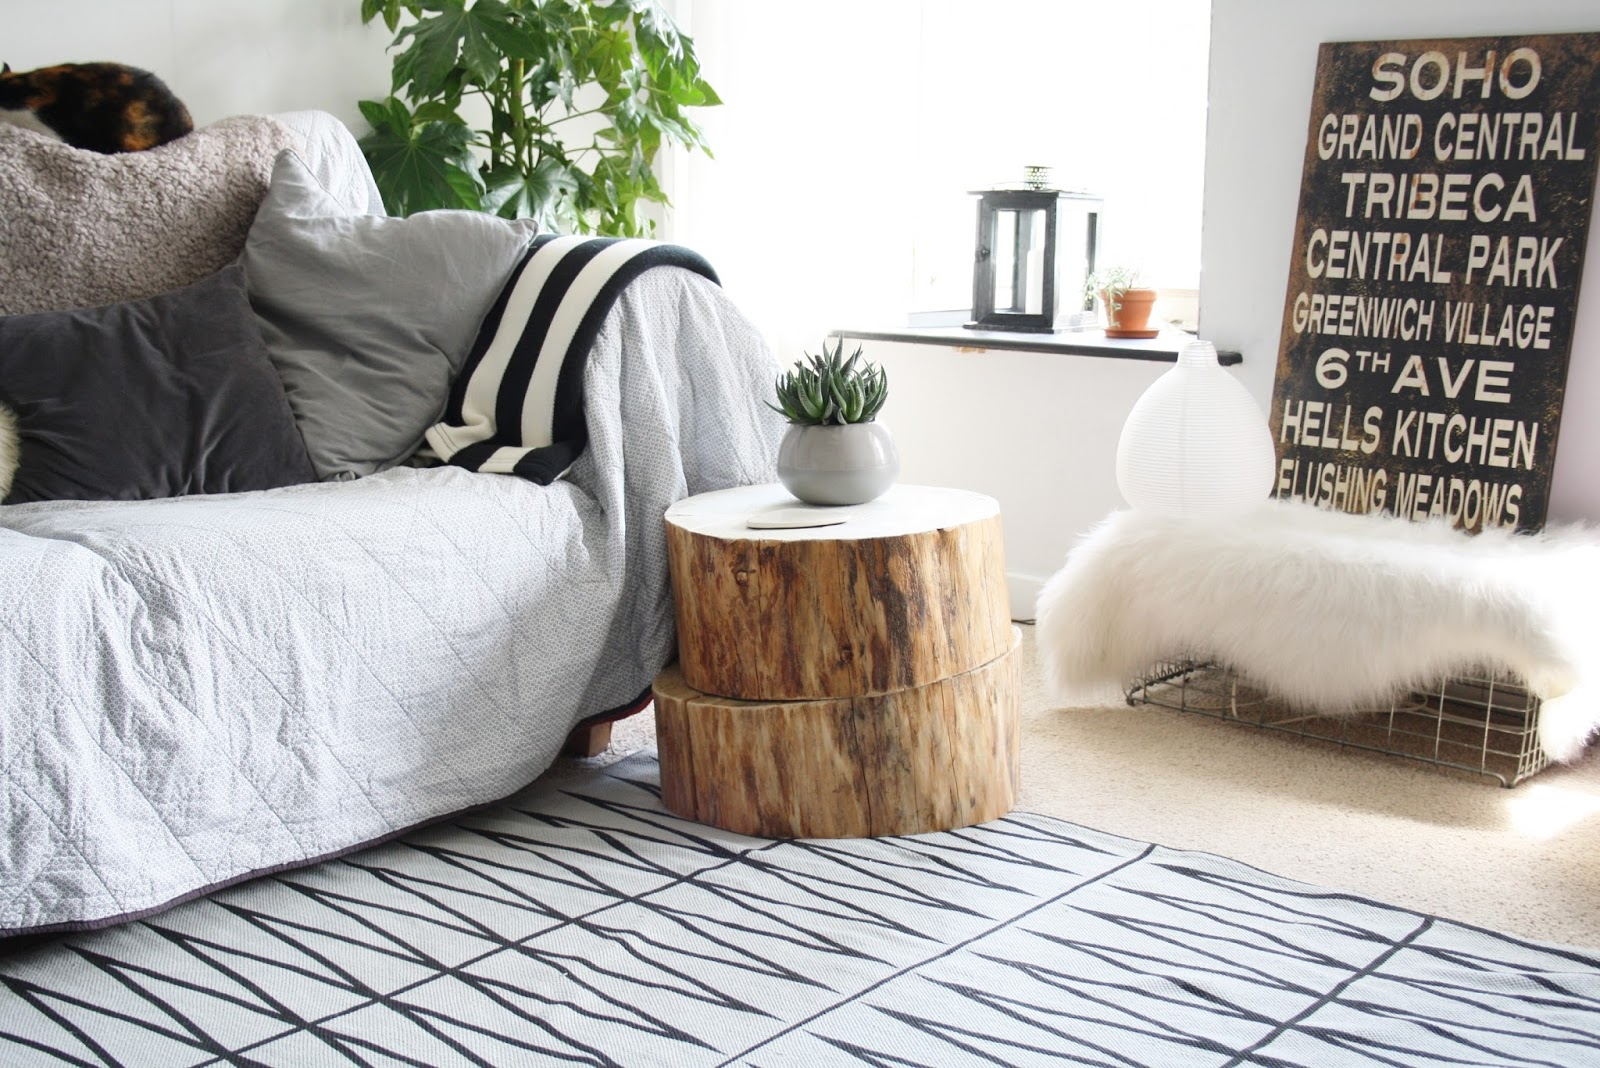 Wooden Stump Side Table | Home design ideas